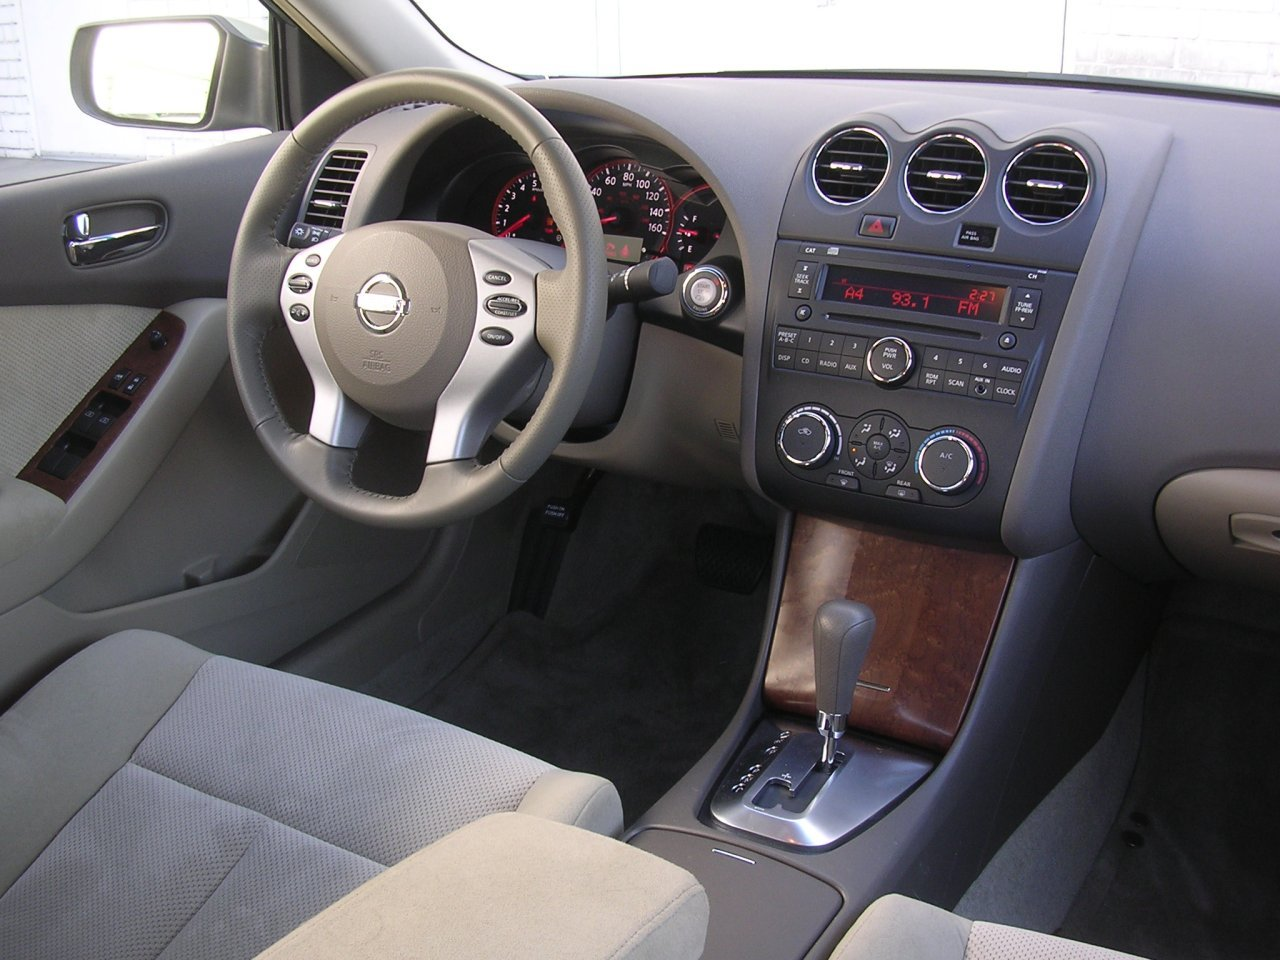 2007 Nissan Altima #10 Nissan Altima #10 Pictures